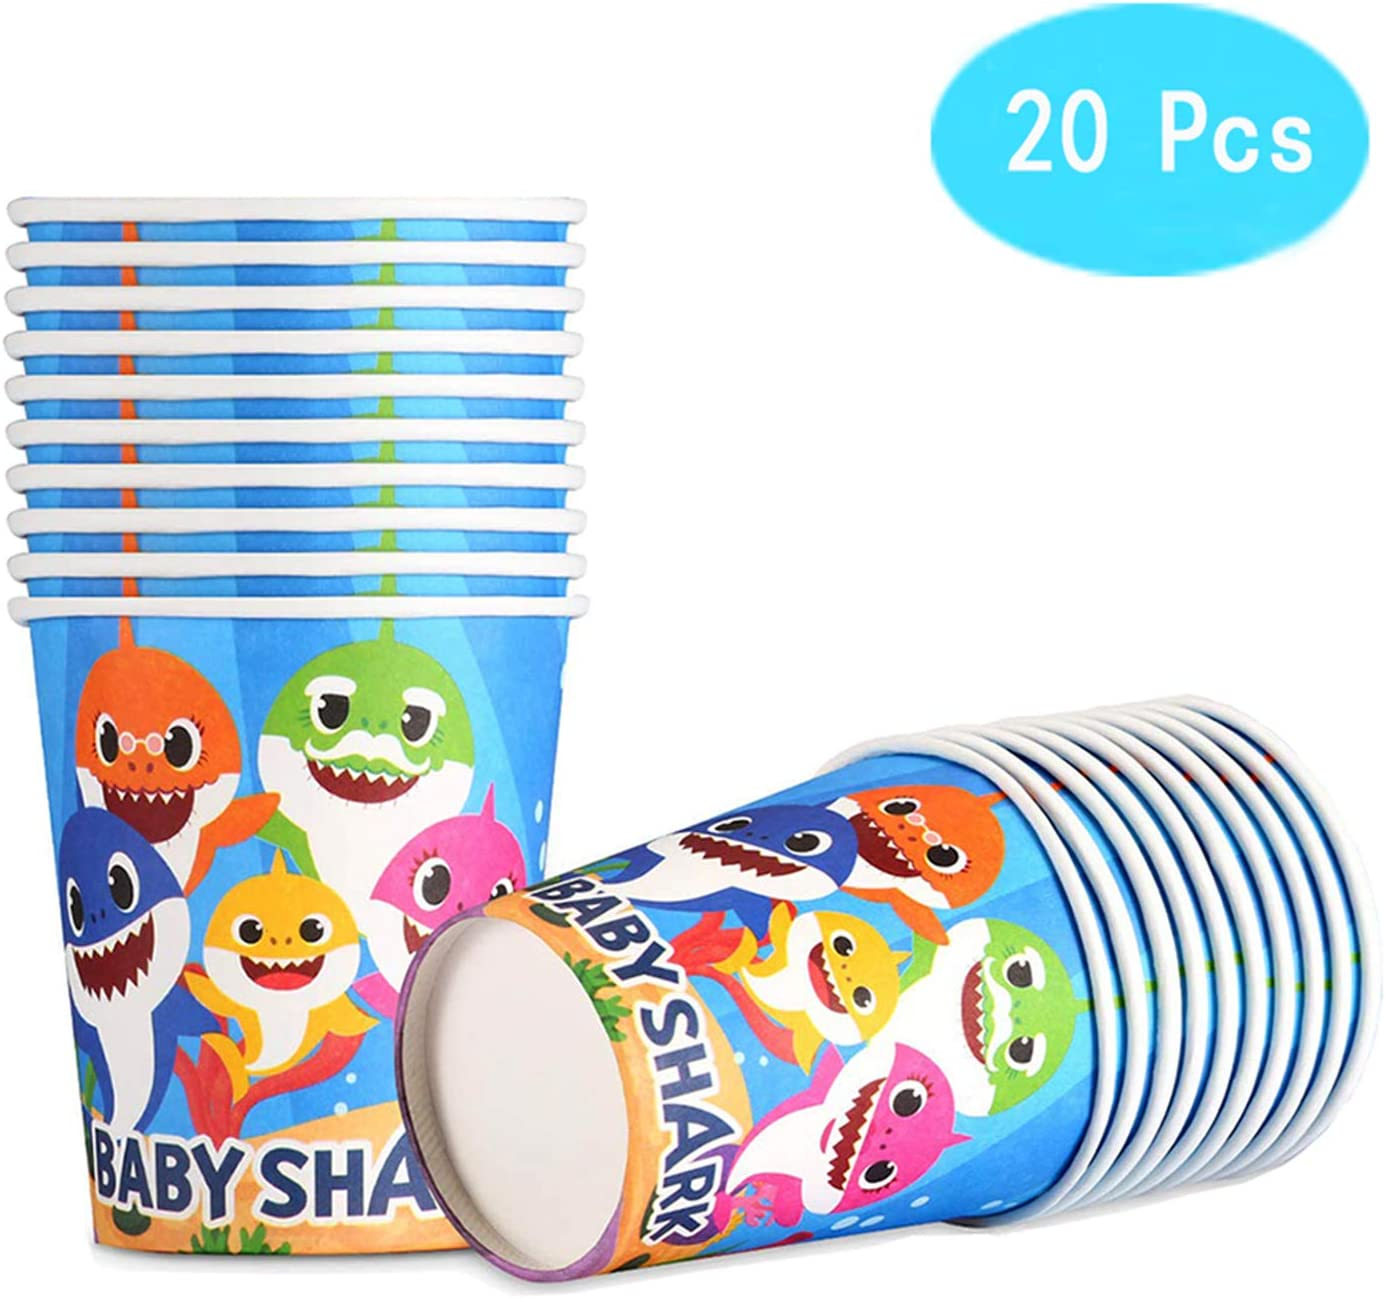 Shark Themed for Baby Party Supplies - Happy Shark Paper Cups - 9 oz, Disposable Paper Cups - Baby The Shark Birthday Party Decorations for Kids - Set 20